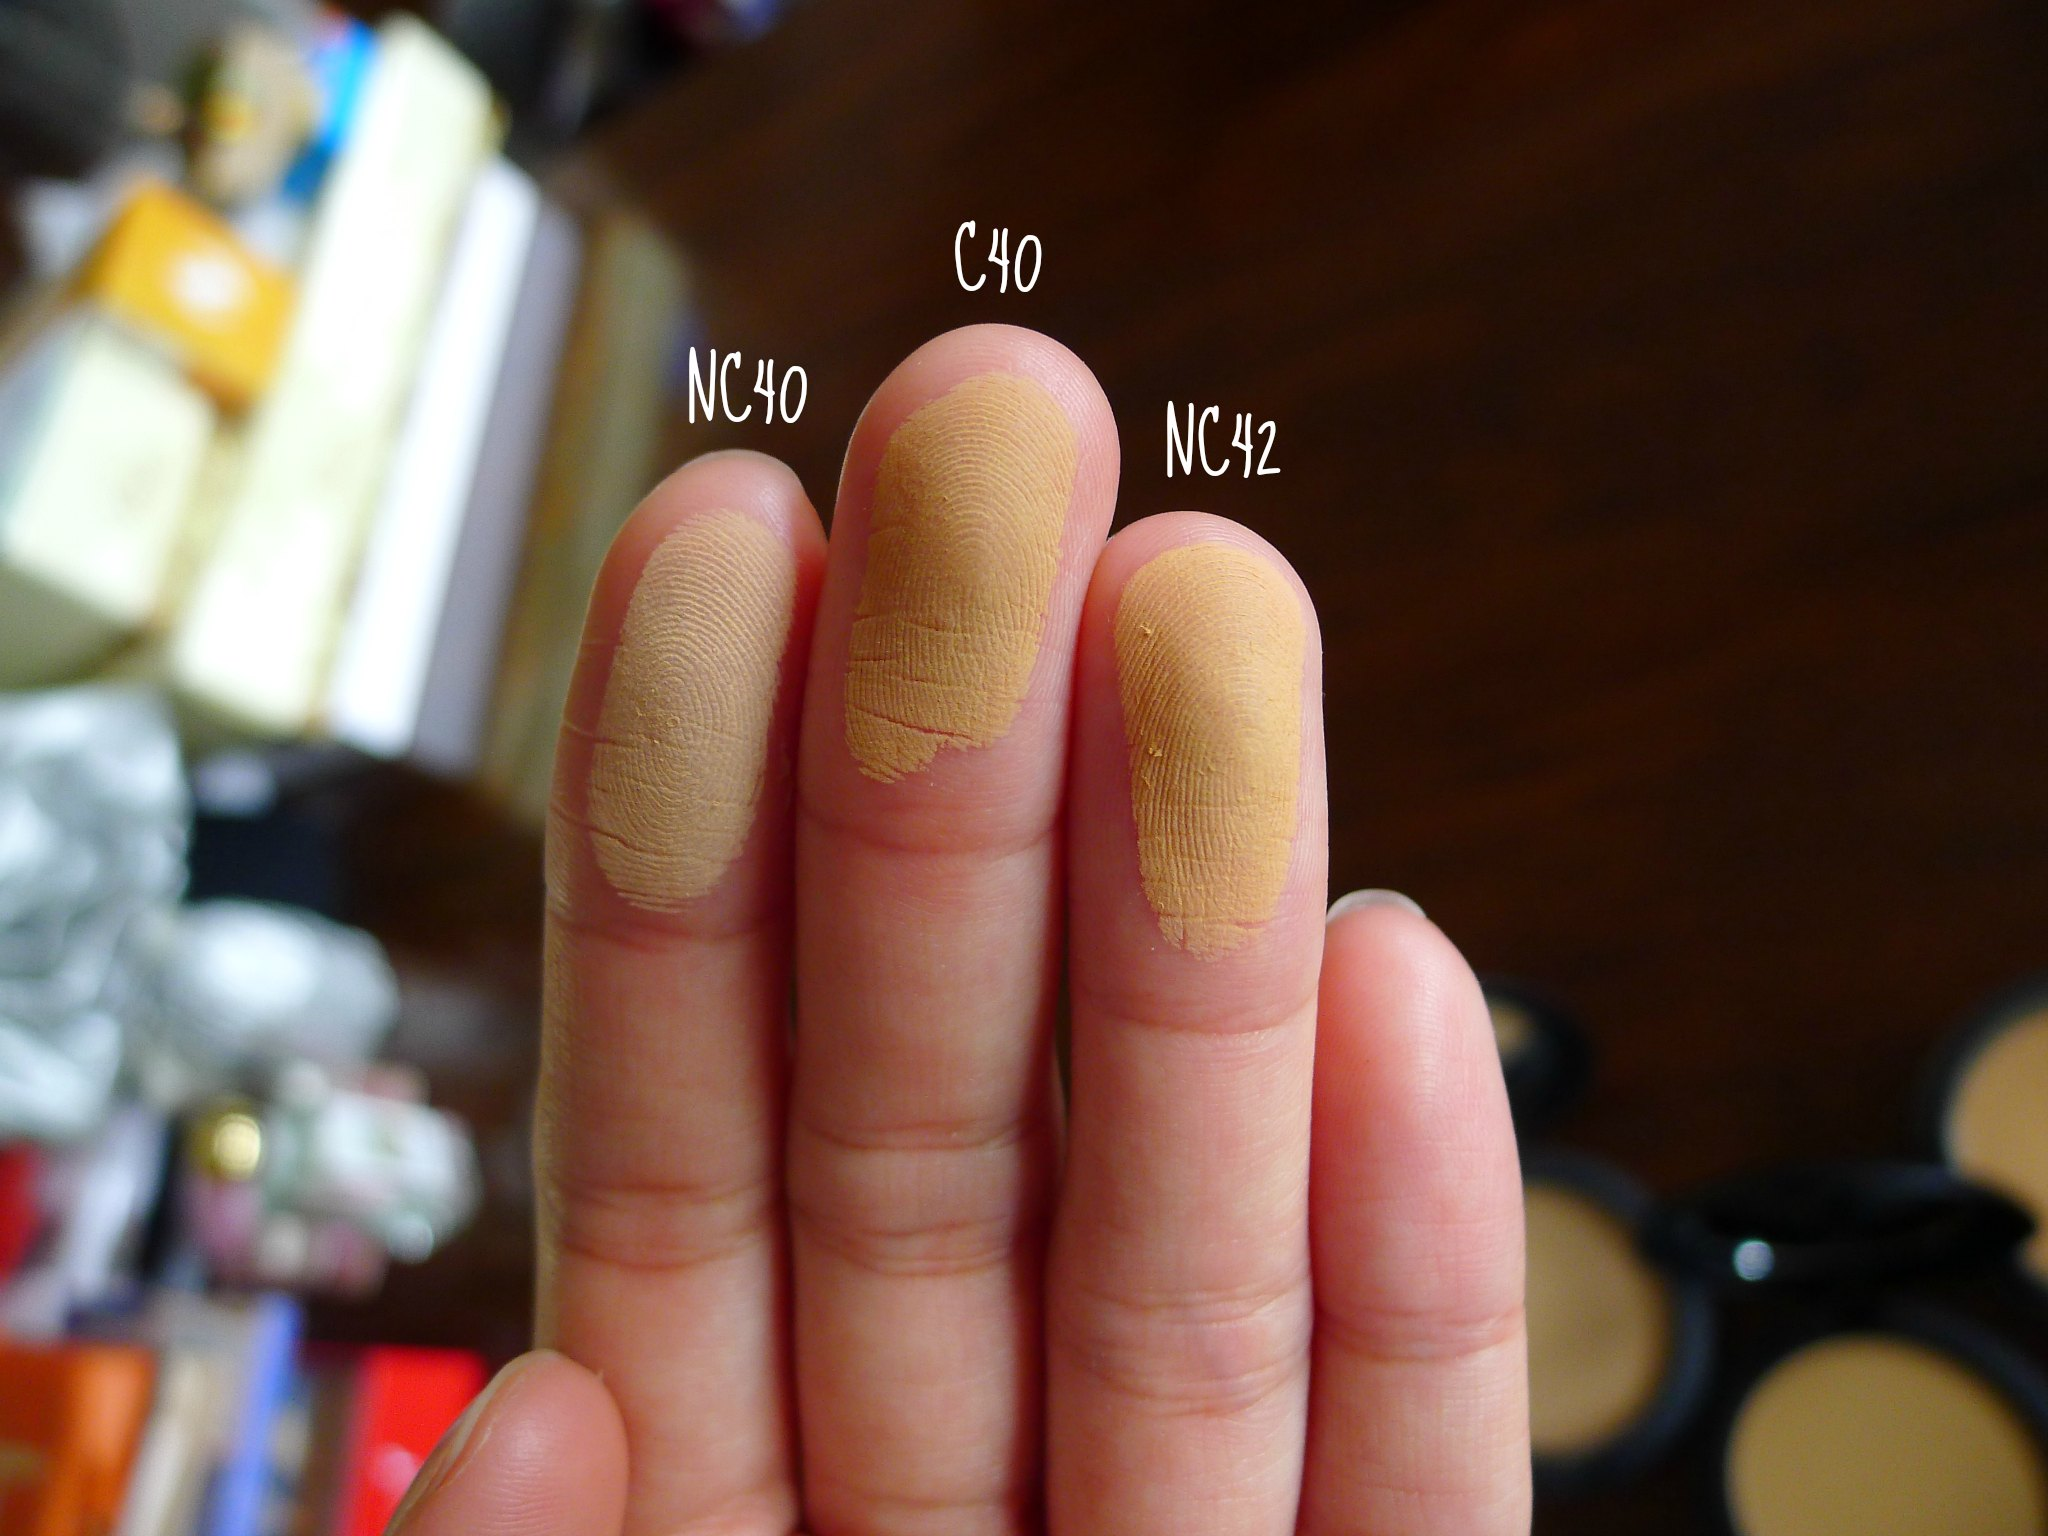 navigating mac s studio fix powder plus foundation shade range my